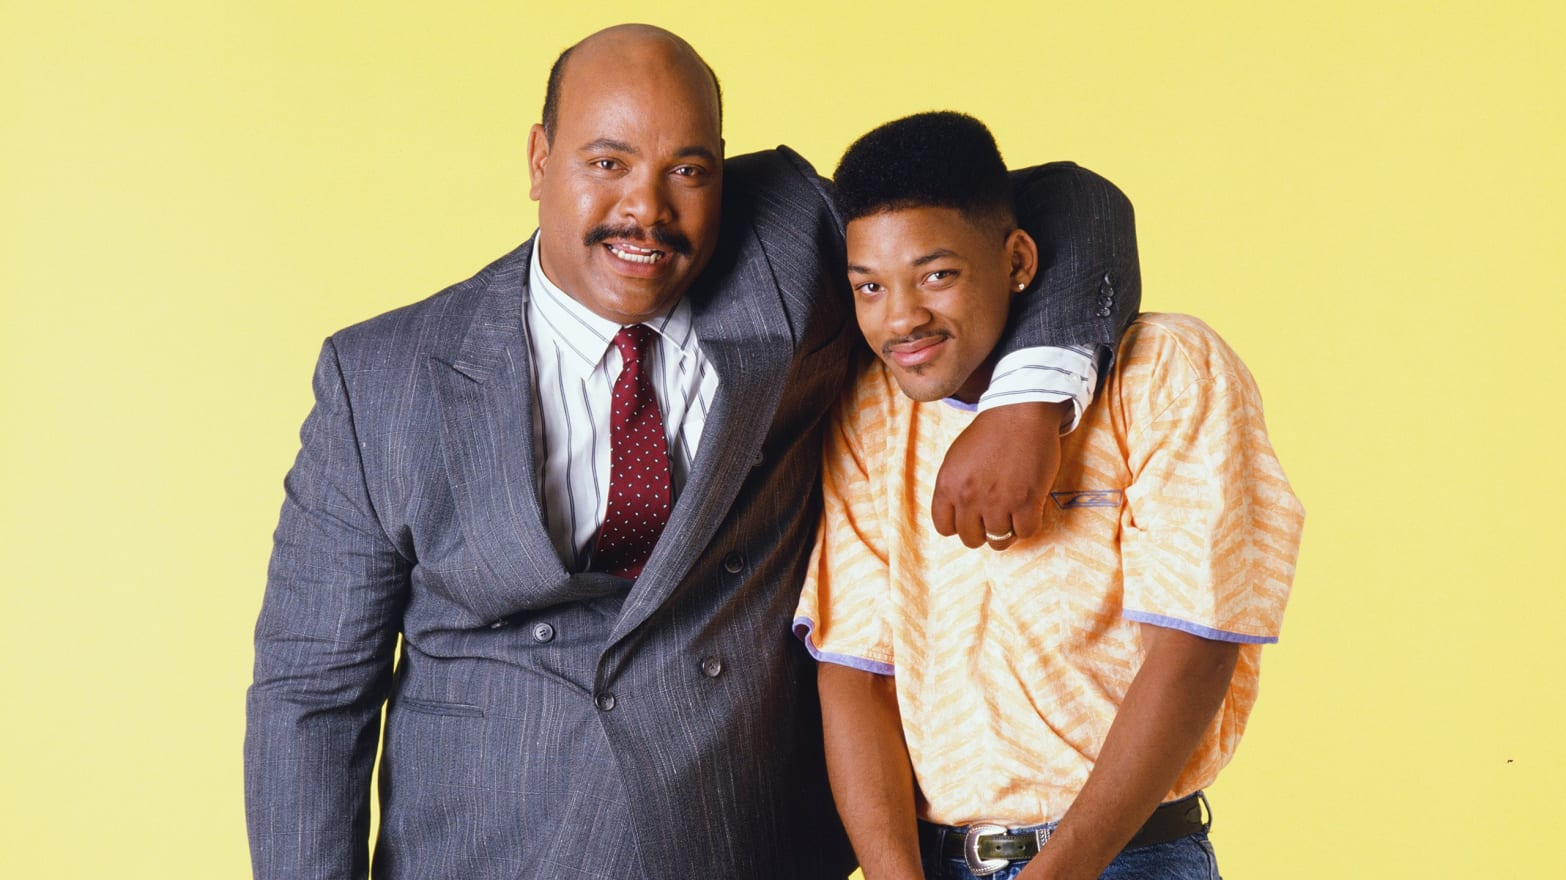 The Greatest TV Dads From '90s Sitcoms